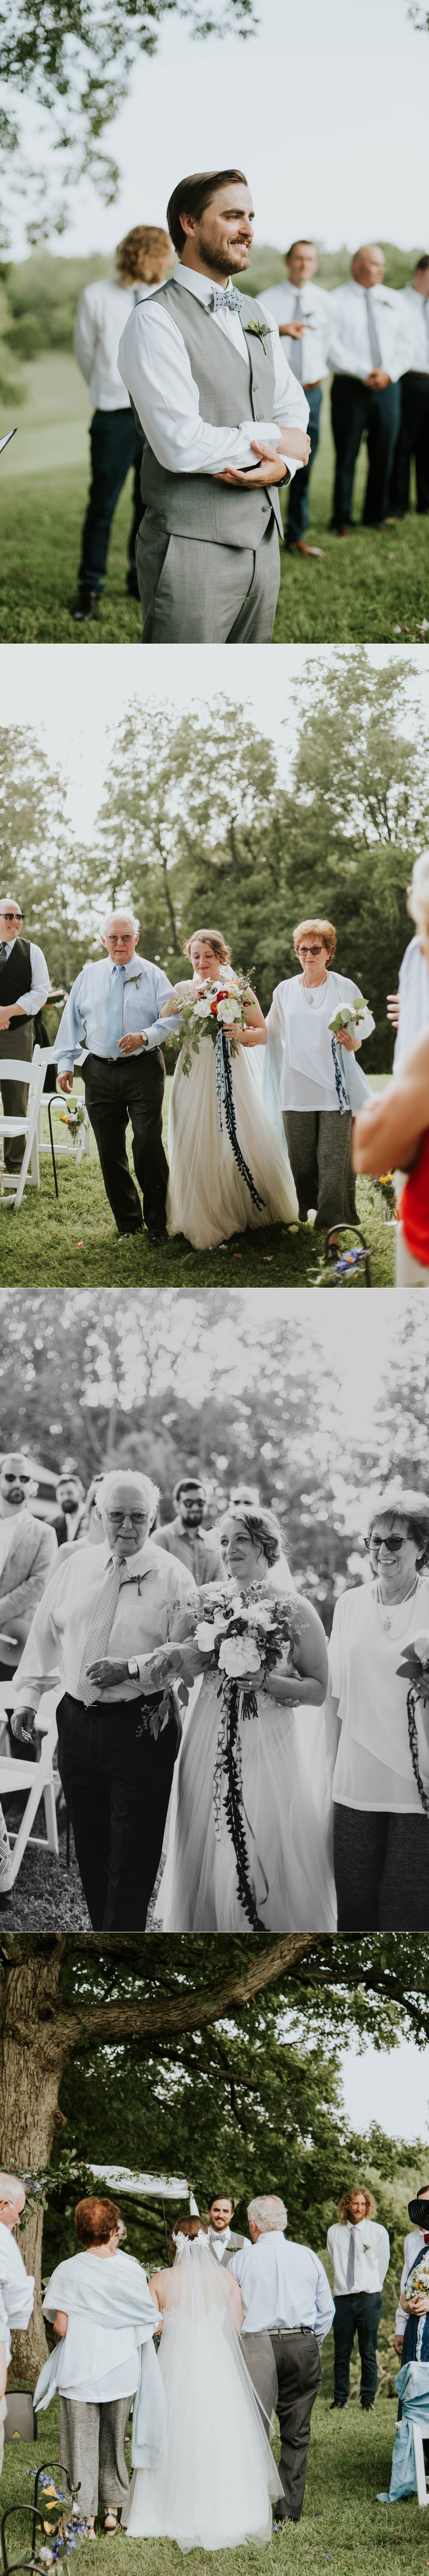 ThroughVictoriasLens_JohnRachel_BohoPickInnWedding33.jpg